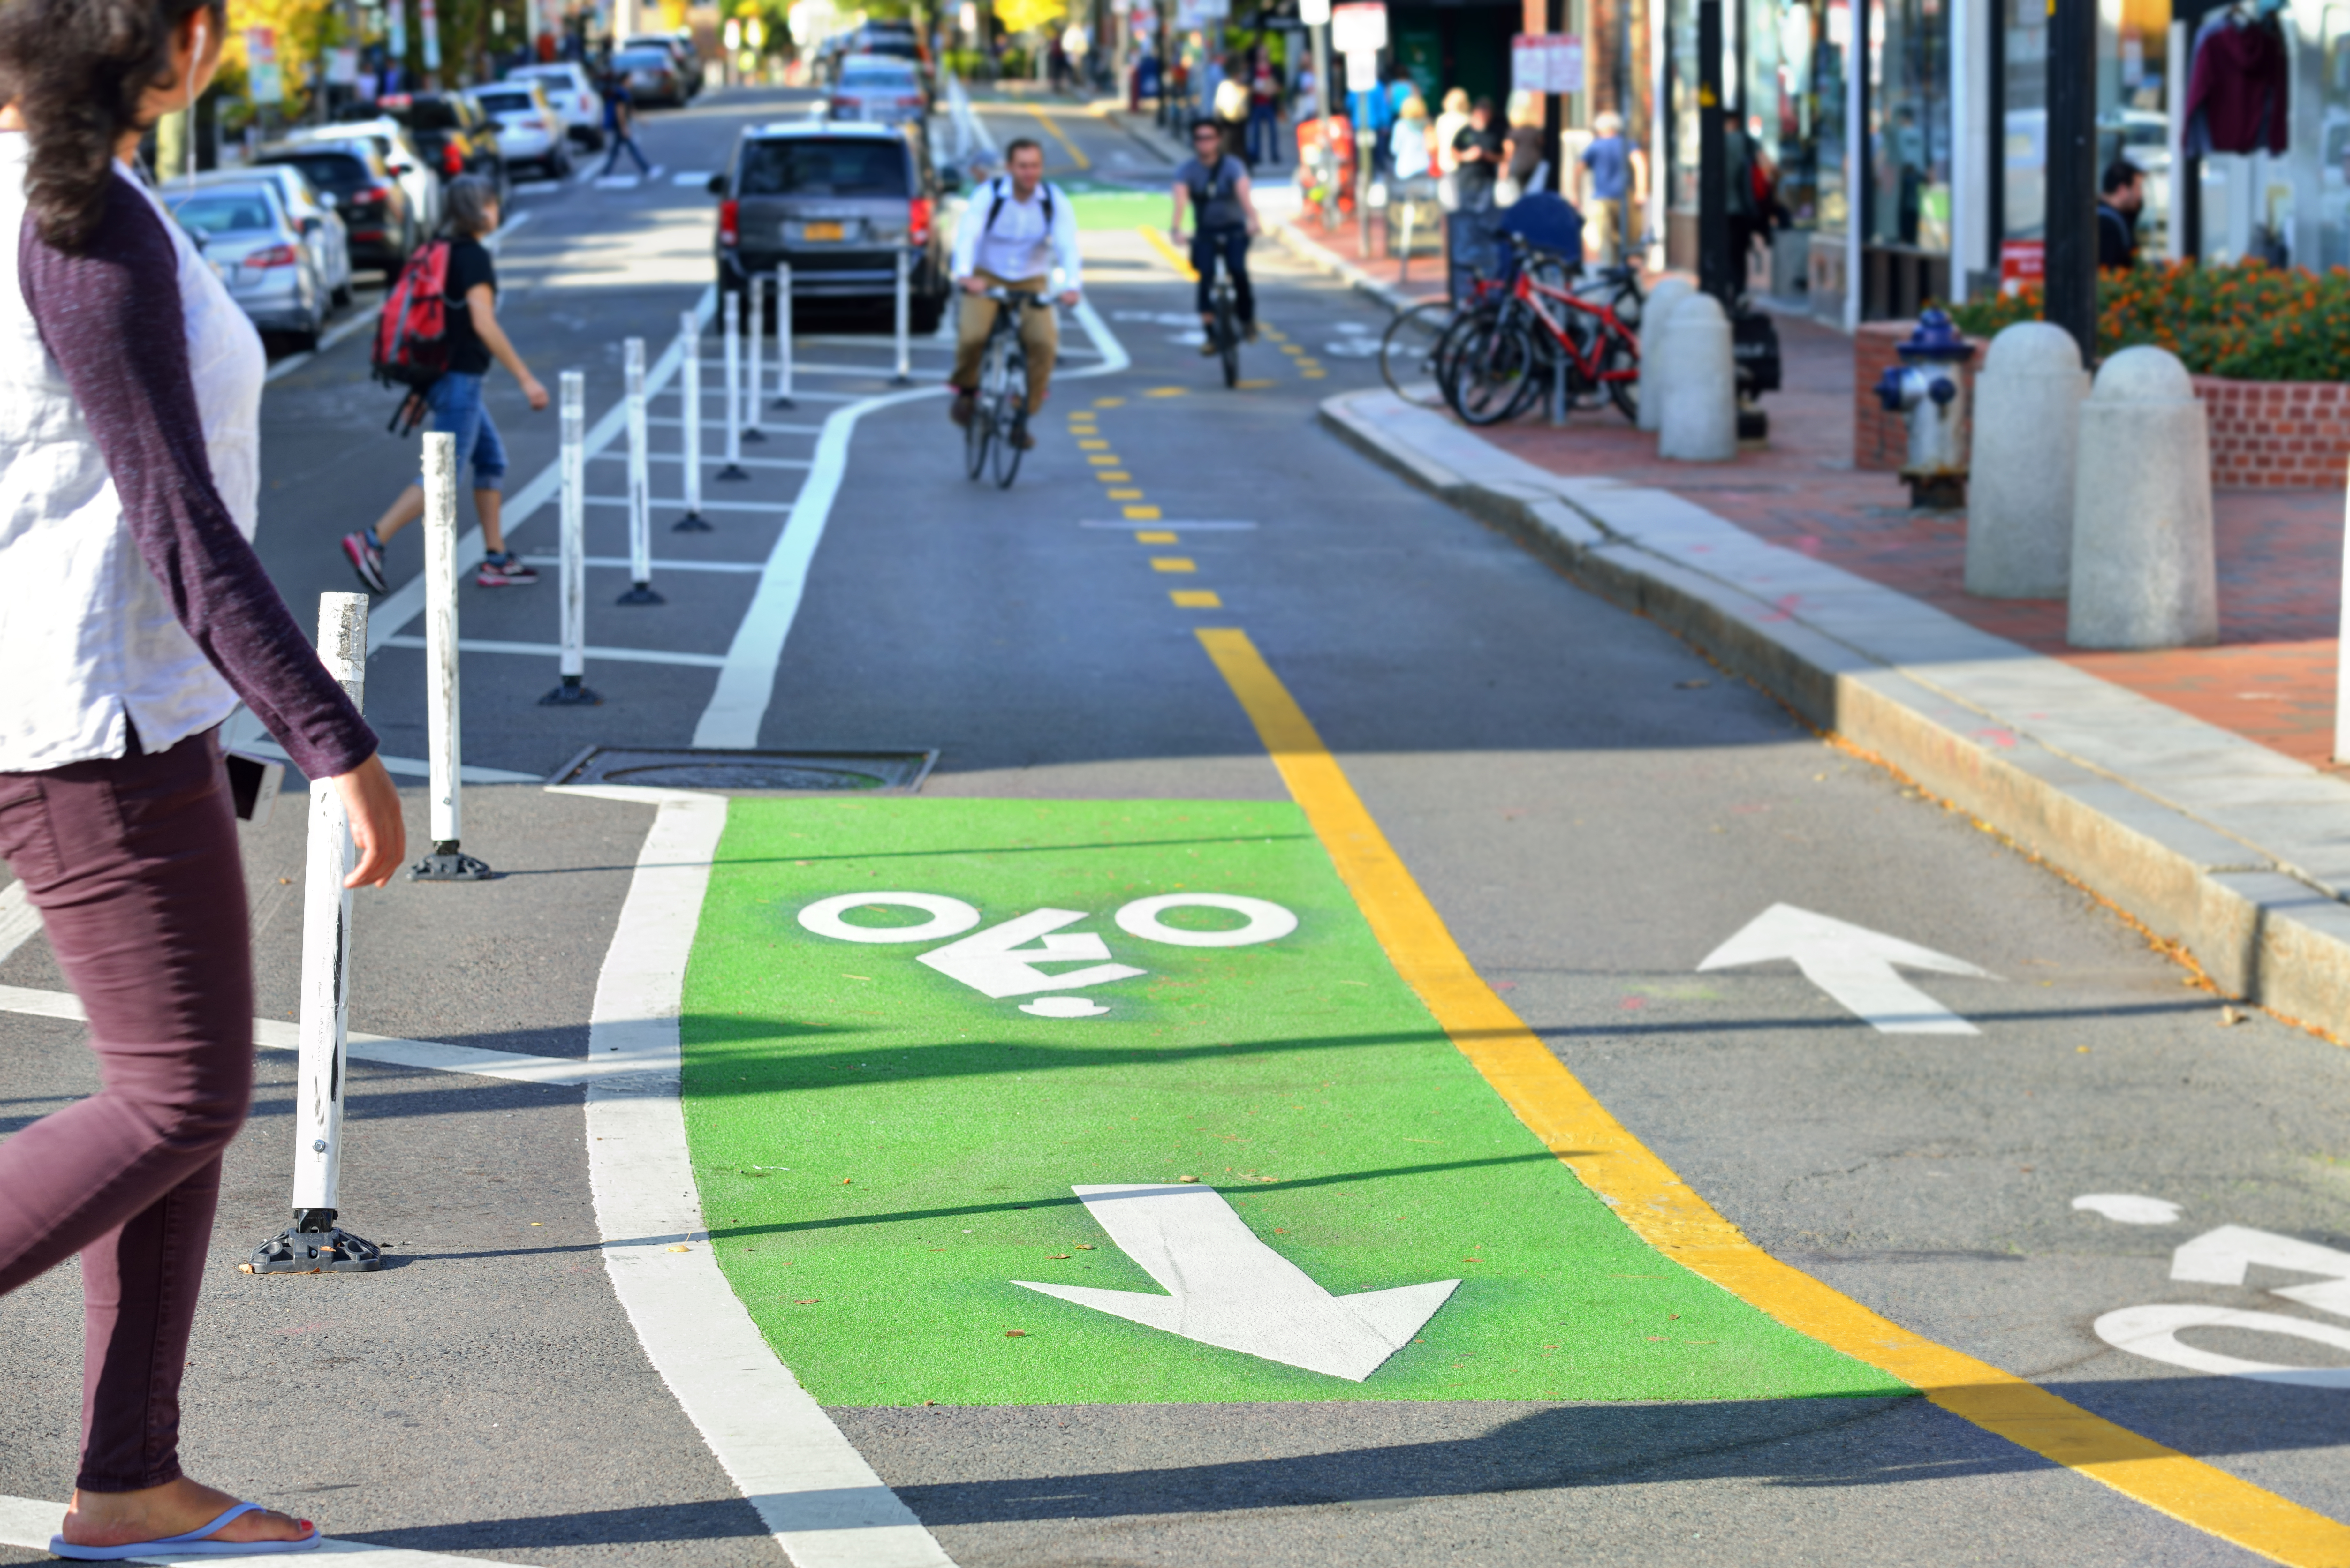 Two-way protected bike lanes with pavement markers, striped median, buffer zone and flexible delineators in city street.